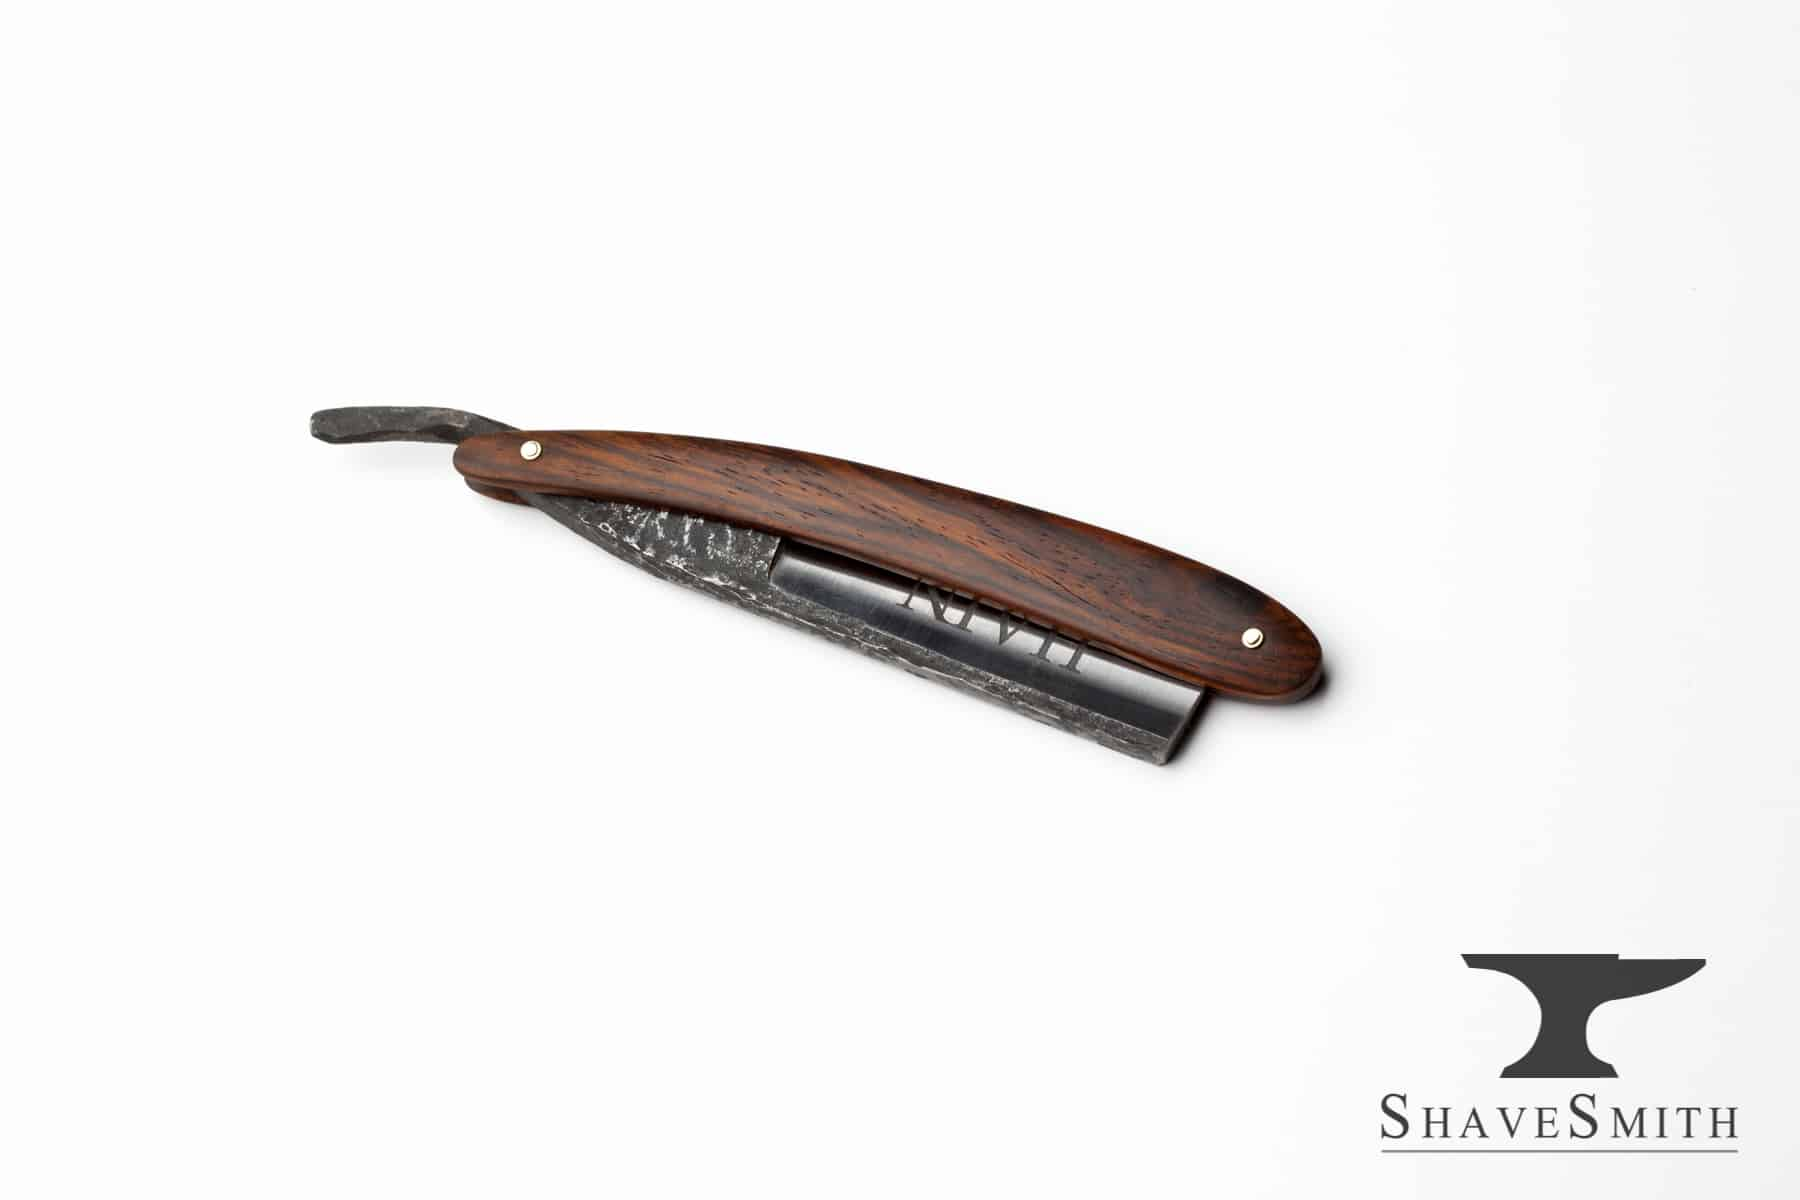 A simple, yet strong family name razor.   HAIN, deeply engraved in the blade face on the razor's presentation side, with a seaview engraving in the other side.   Build to be a nimble shaver, but stout to outlive us all. All cocobolo, rounded profile, and forged steel work together to make this simple piece feel visually fulfilling.